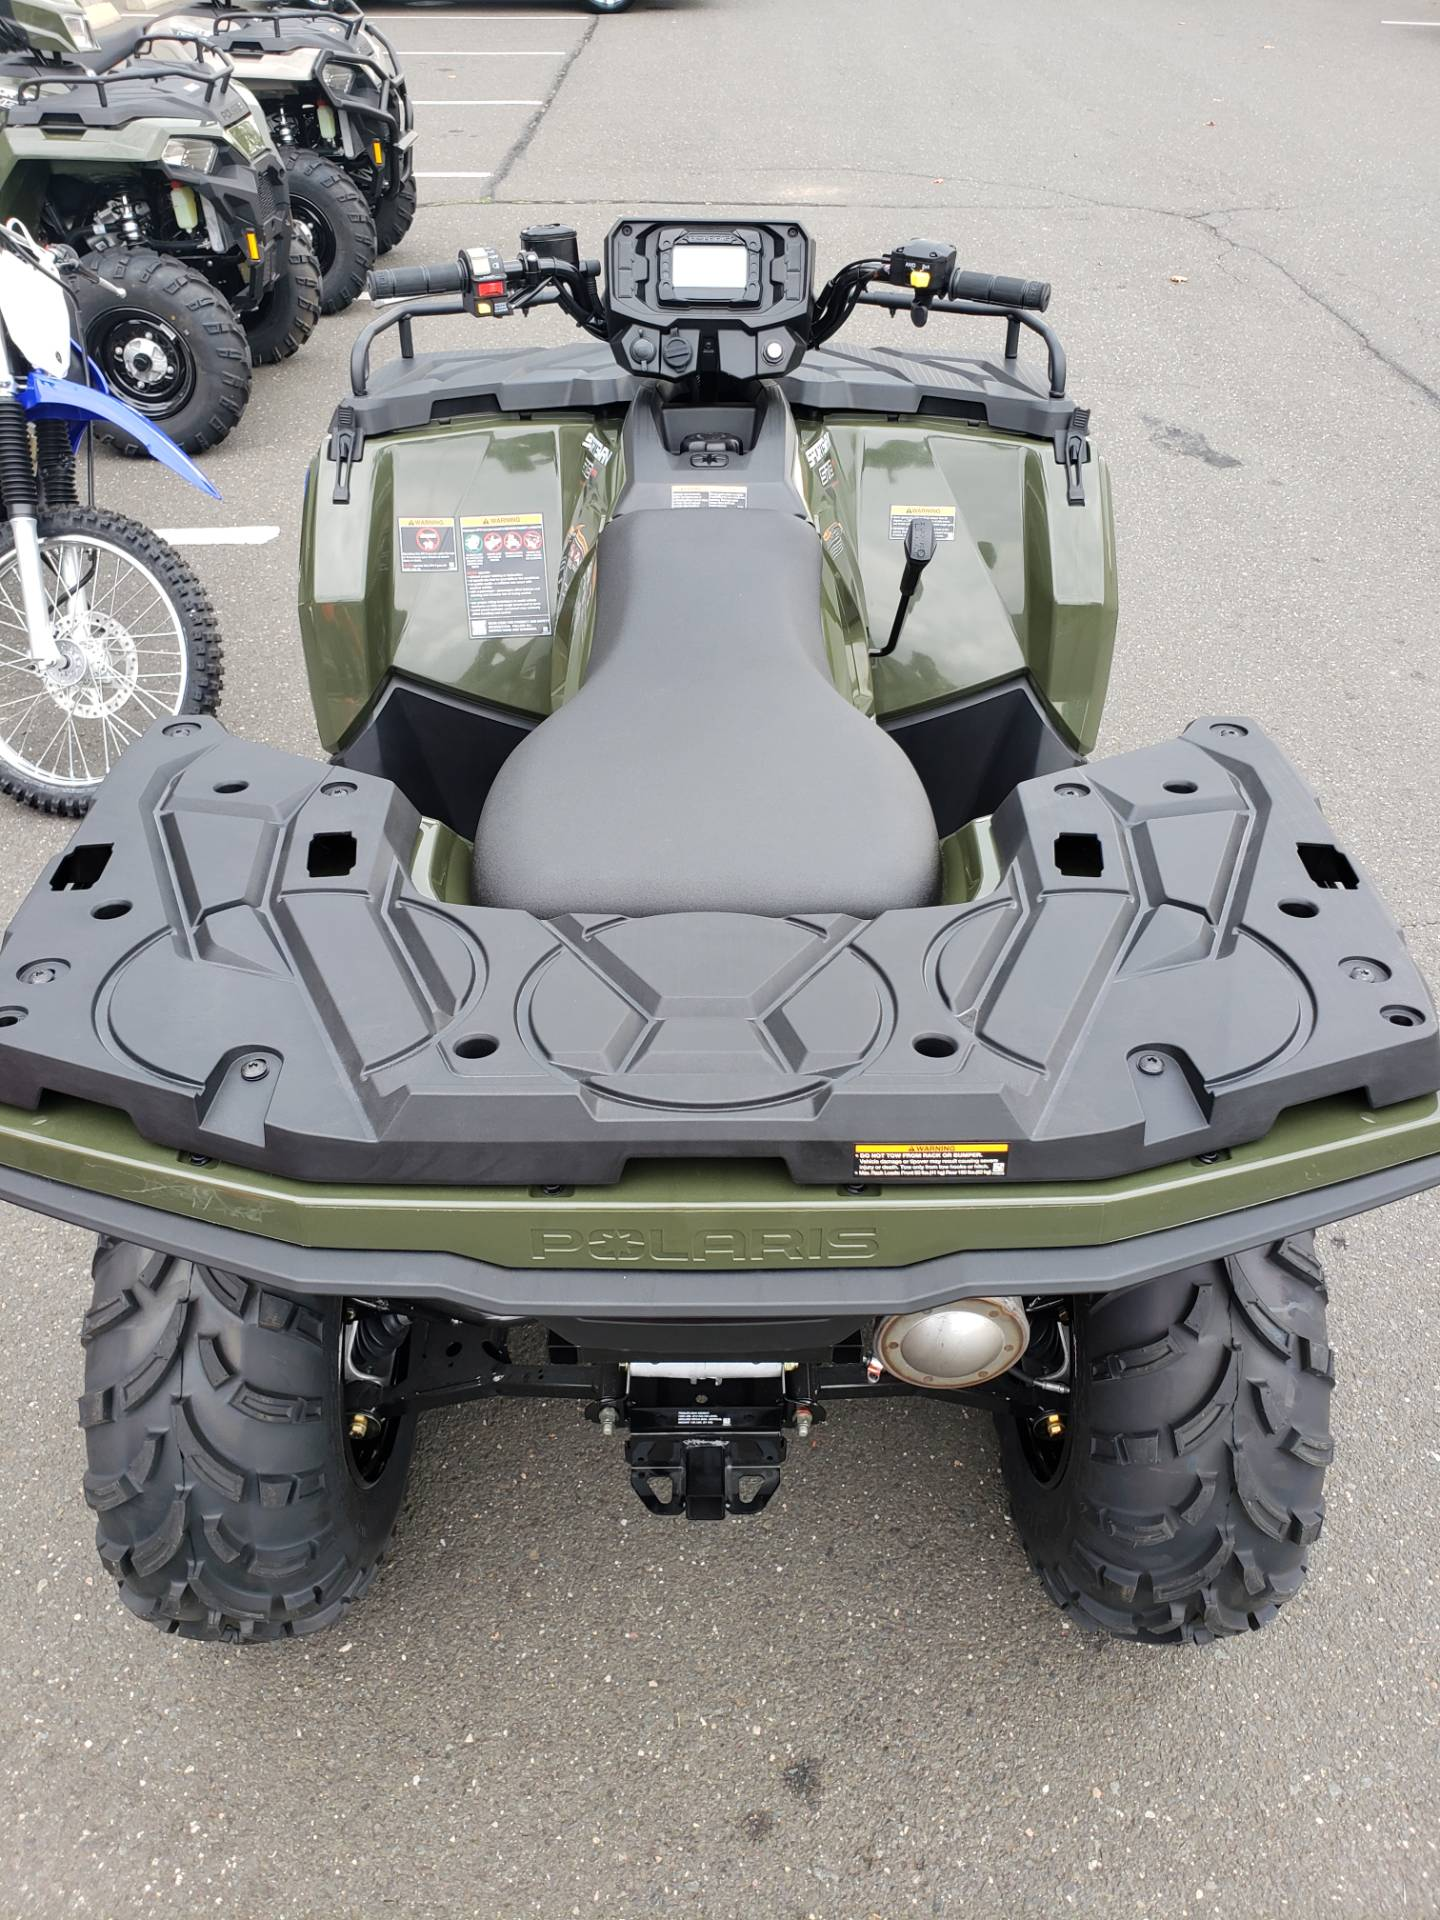 2021 Polaris Sportsman 570 in Danbury, Connecticut - Photo 3